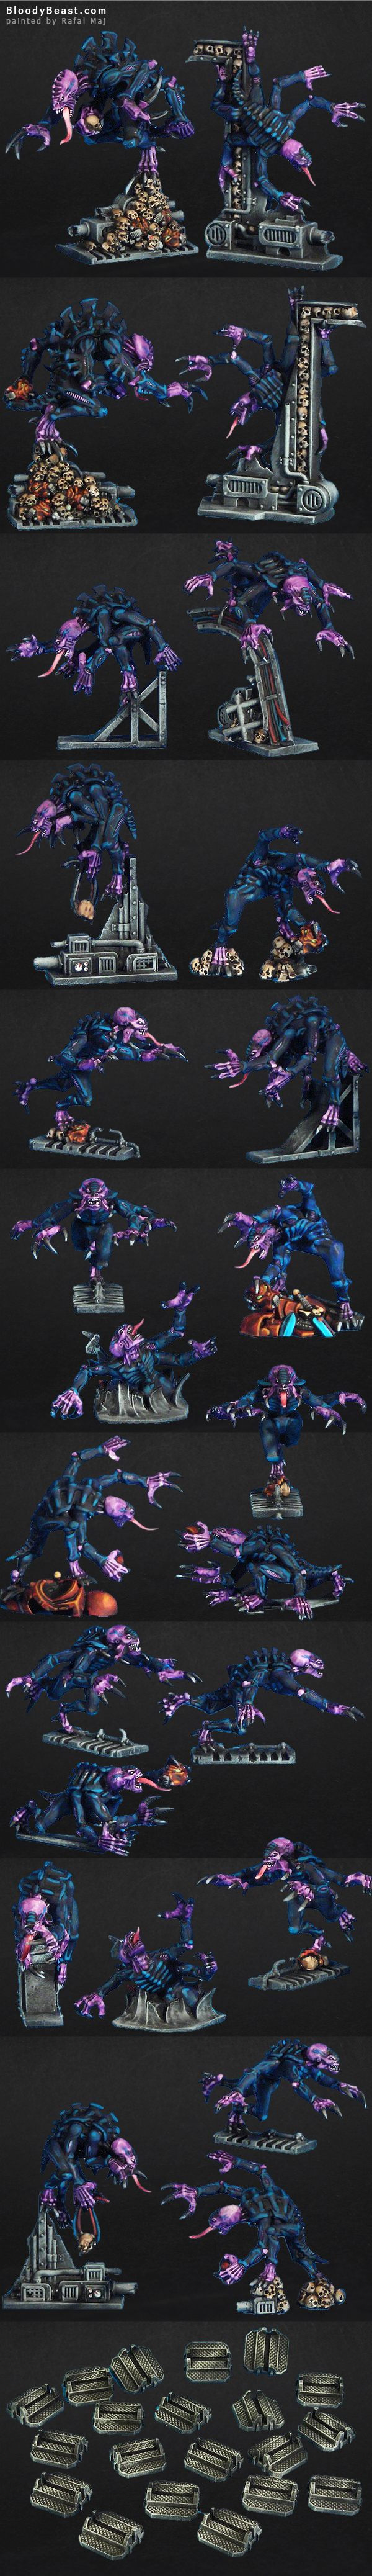 Another Space Hulk 3rd Edition Genestealers painted by Rafal Maj (BloodyBeast.com)